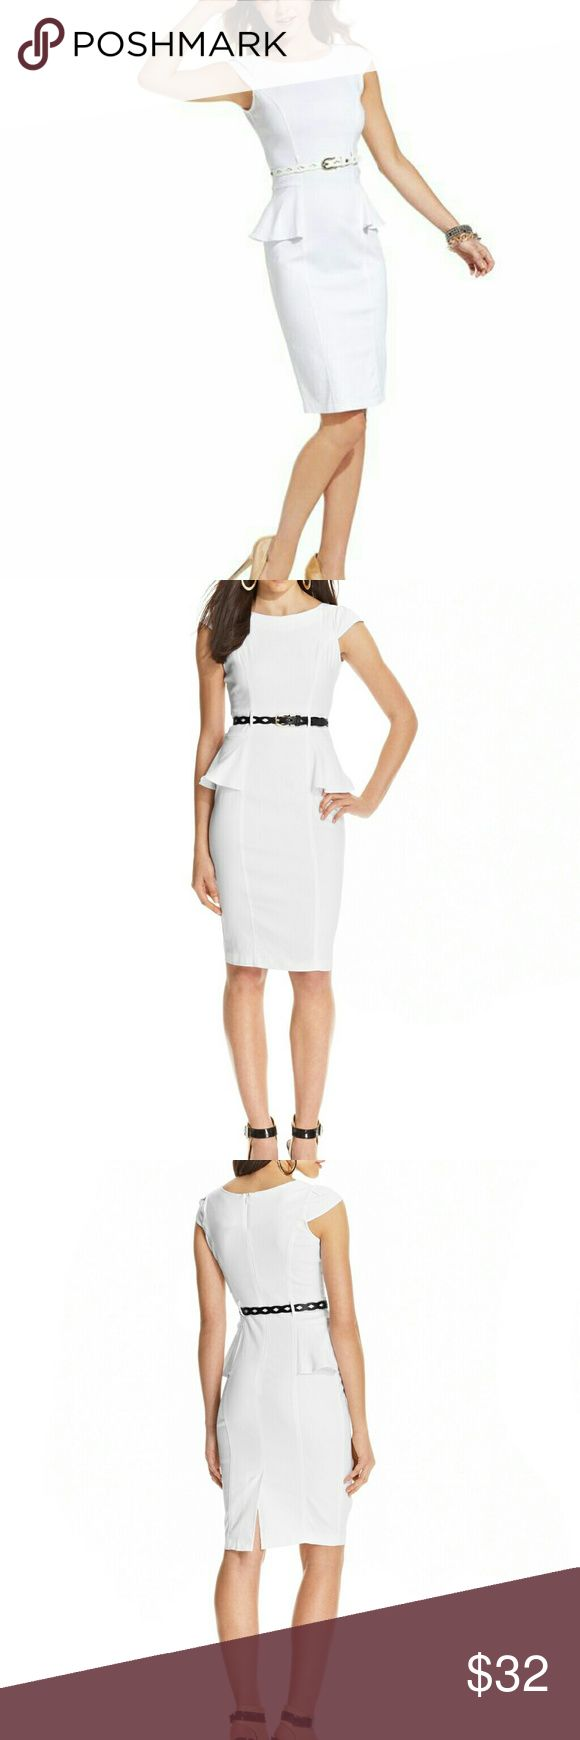 NWOT White peplum dress with cap sleeves New without tags white peplum dress with cap sleeves. Never worn. Perfect condition! Size 5/6. Make me an offer! XOXO Dresses Midi